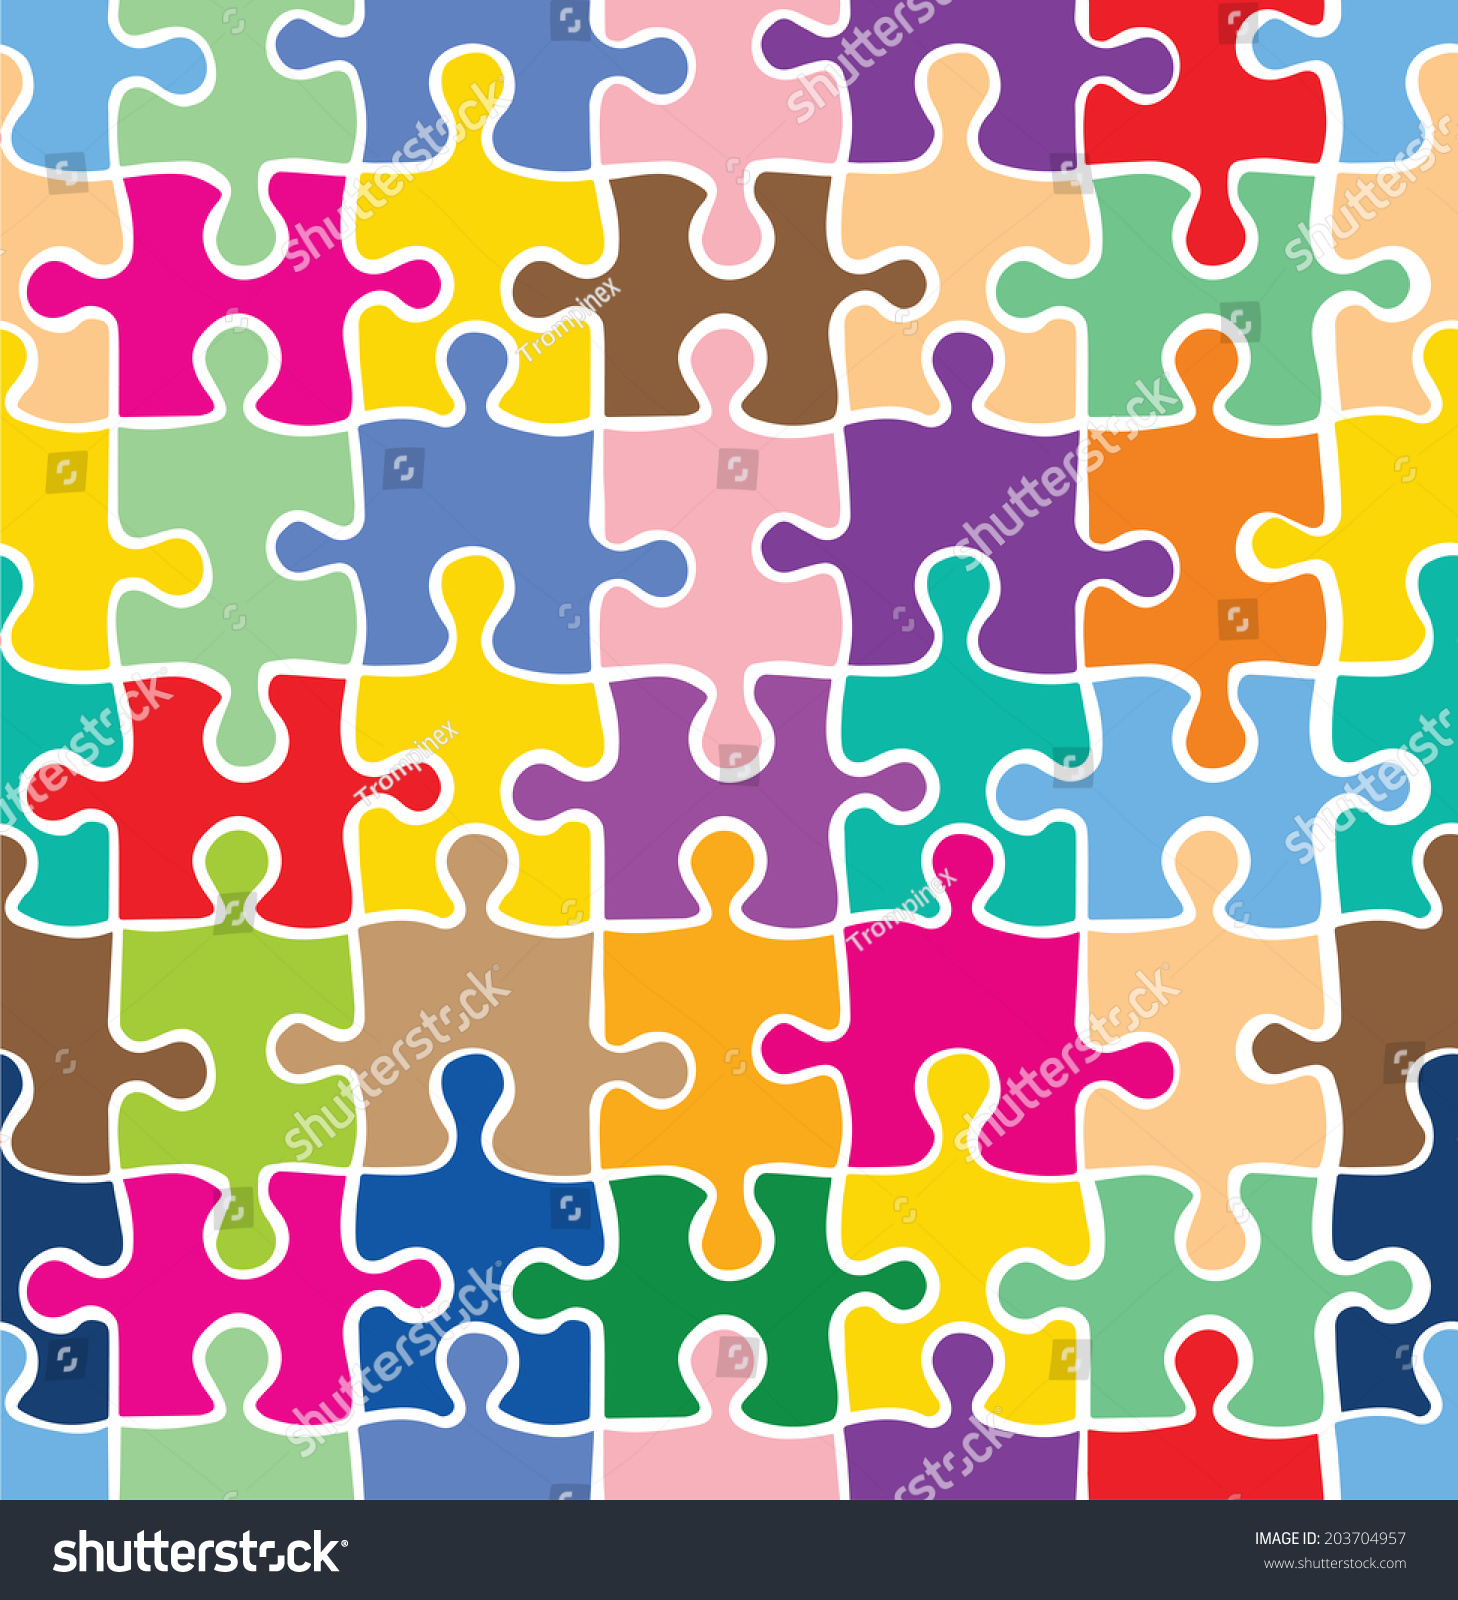 Colorful Puzzle Texture Decorative Pattern Seamless Stock Vector